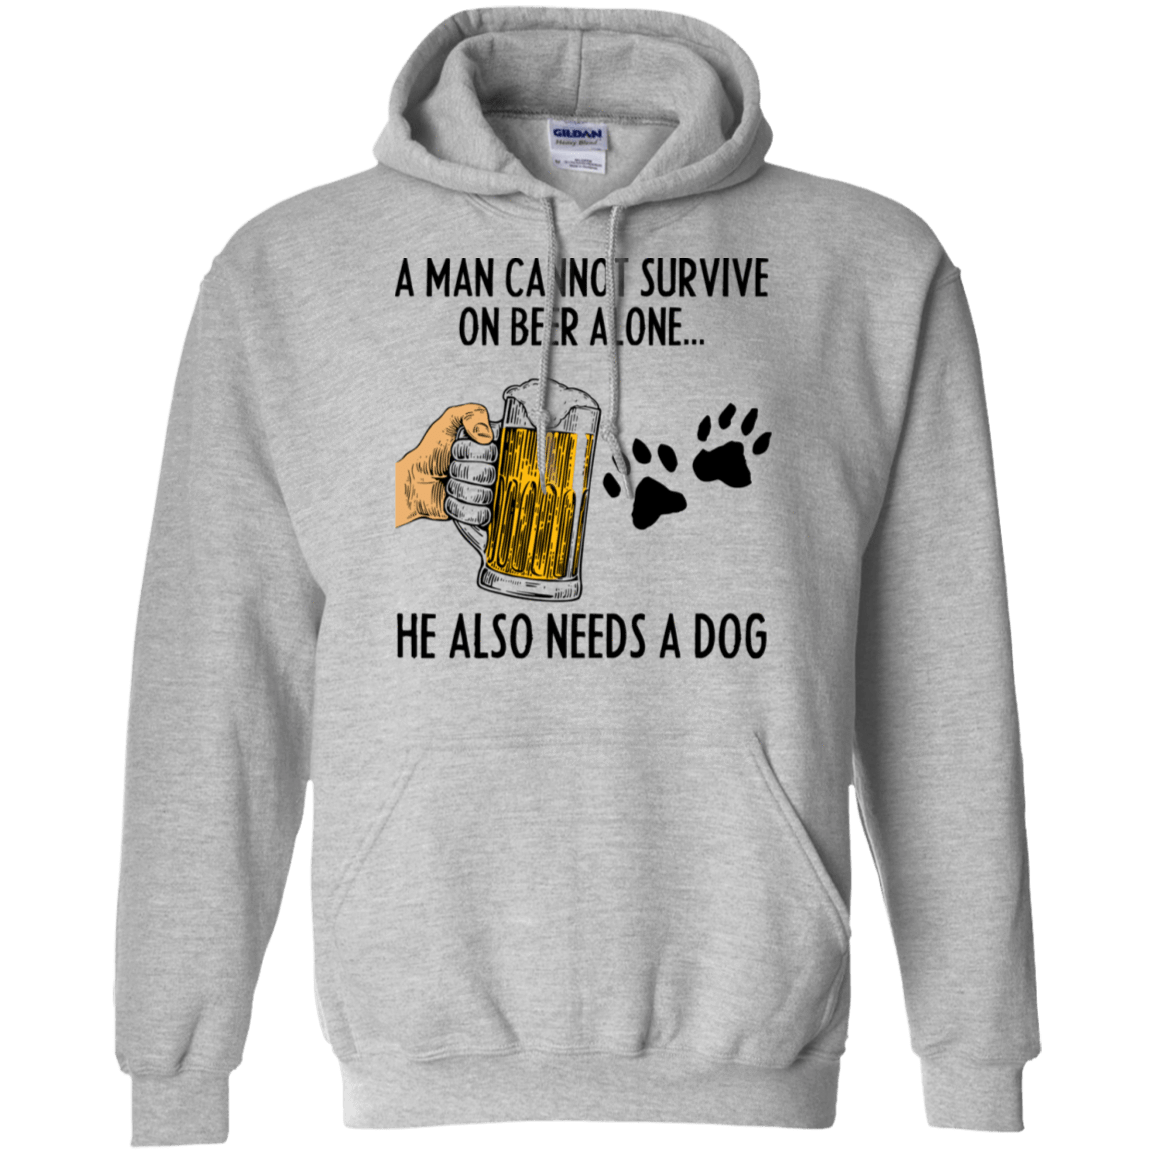 A Man Cannot Survive On Beer Alone He Also Needs A Dog T-Shirts, Hoodie, Tank 541-4741-78468480-23111 - Tee Ript